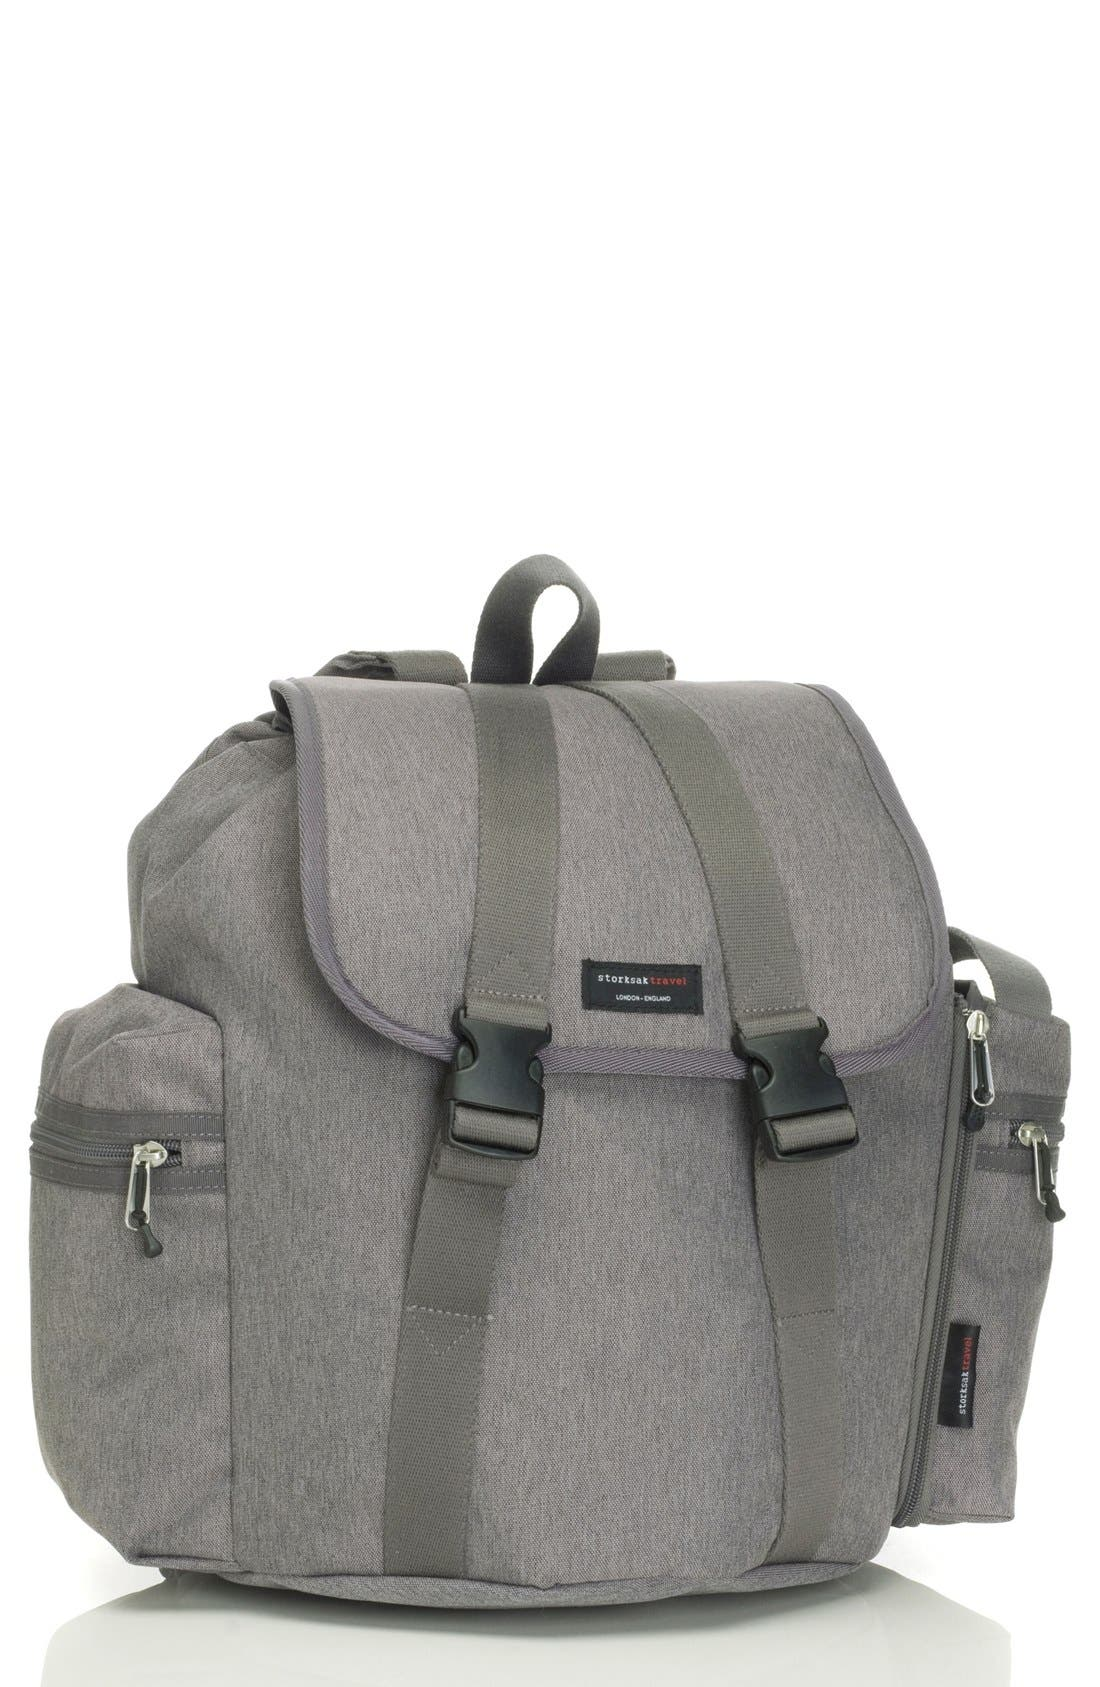 Alternate Image 1 Selected - Storksak Travel Backpack Diaper Bag